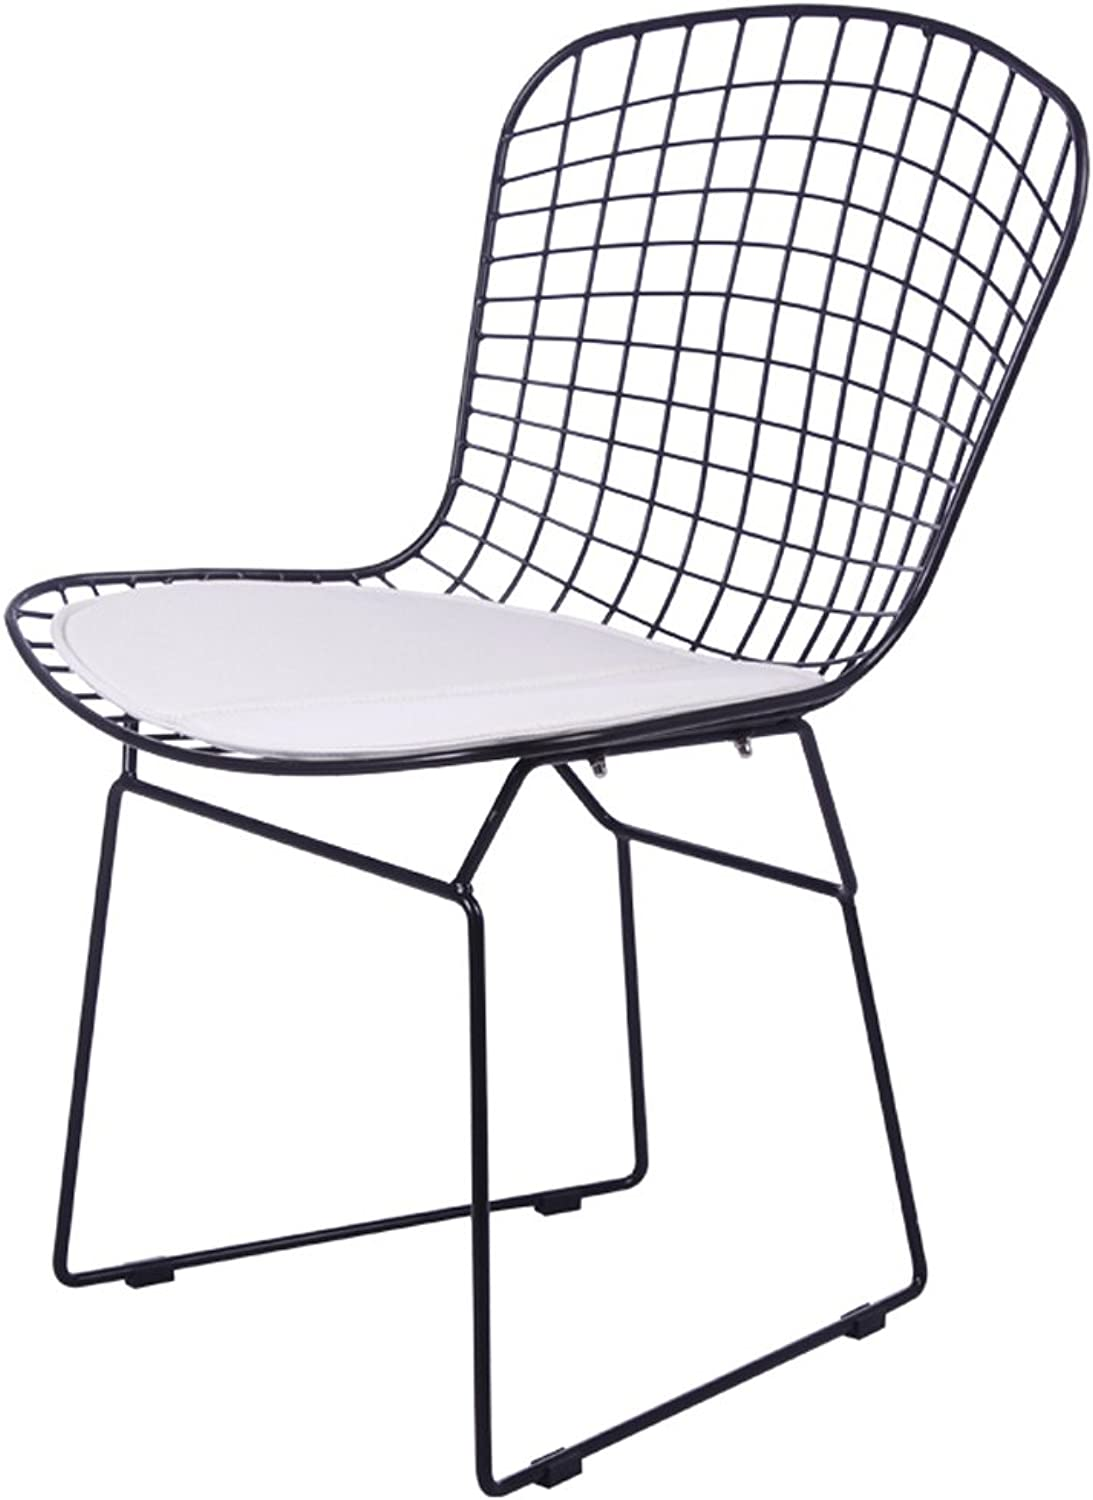 JJJJD Openwork Iron Wire Chair backrest Outdoor Chair Modern Leisure Chair Dining Table Chair Conference Chair European Style Simple Hollow Iron Chair (color   White pad)